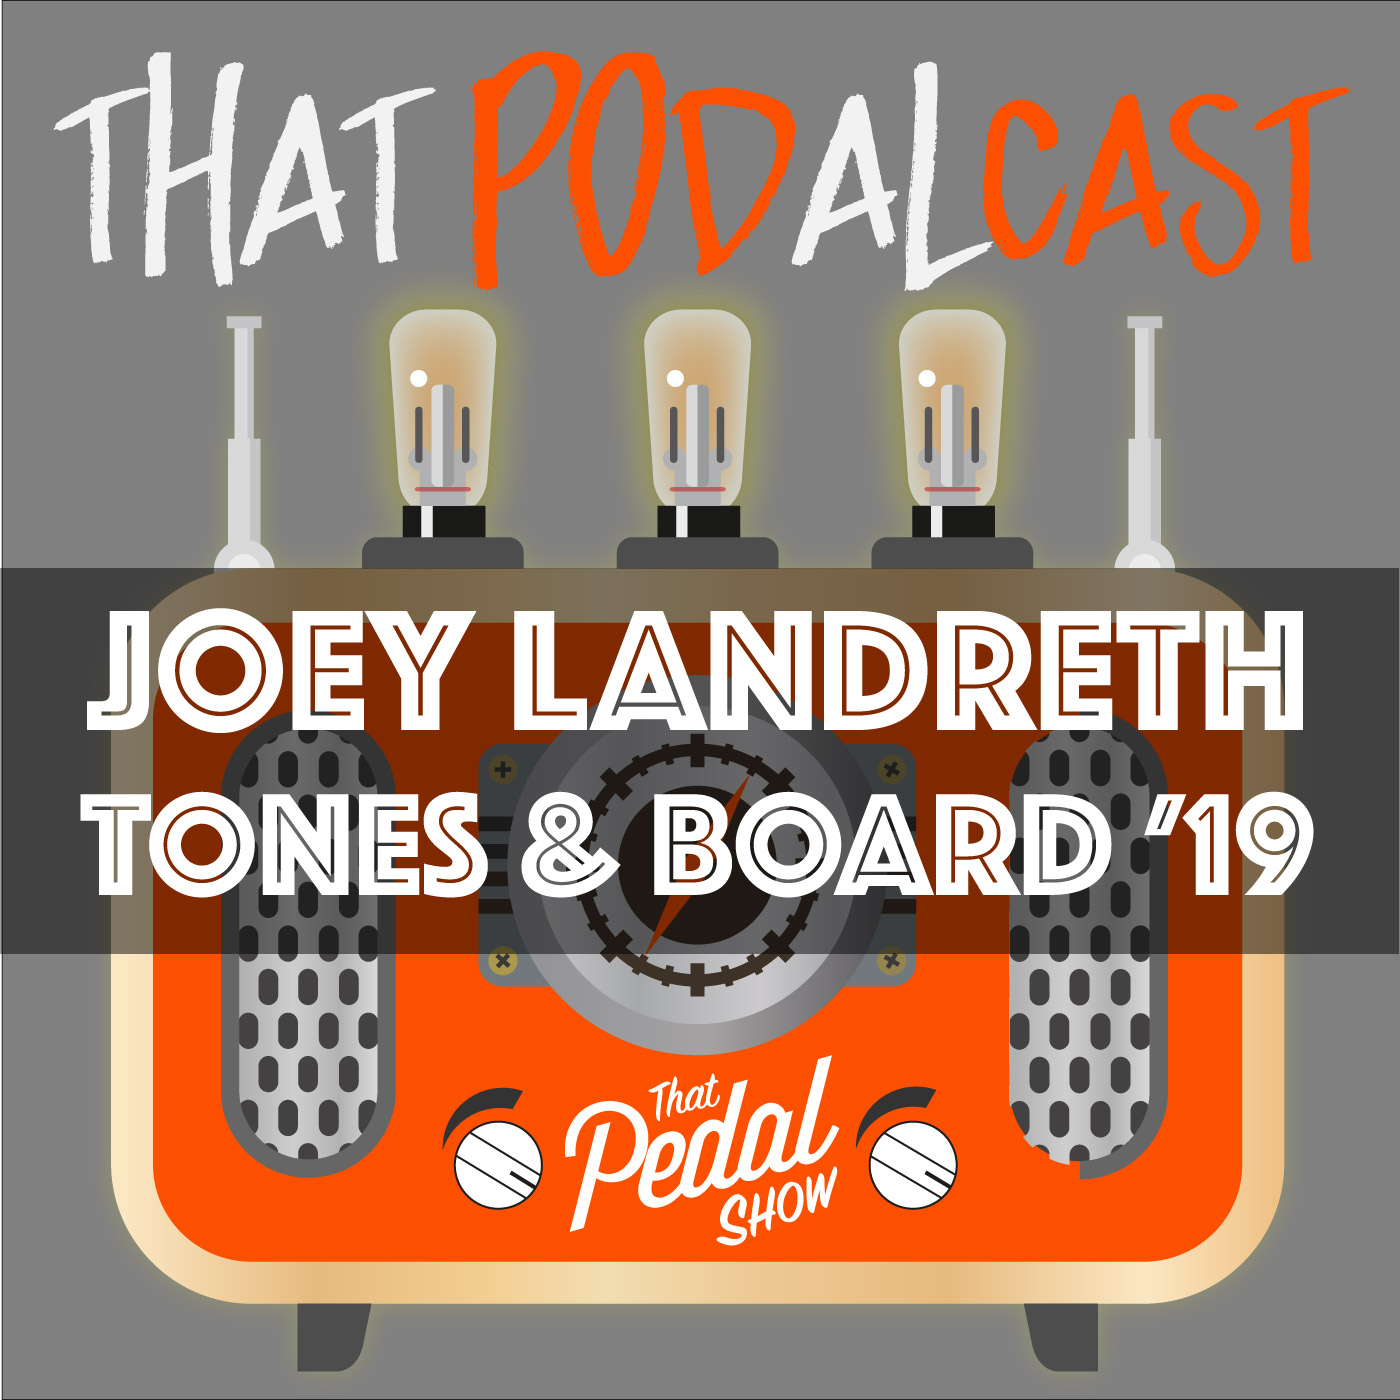 Joey Landreth Board & Tones 2019